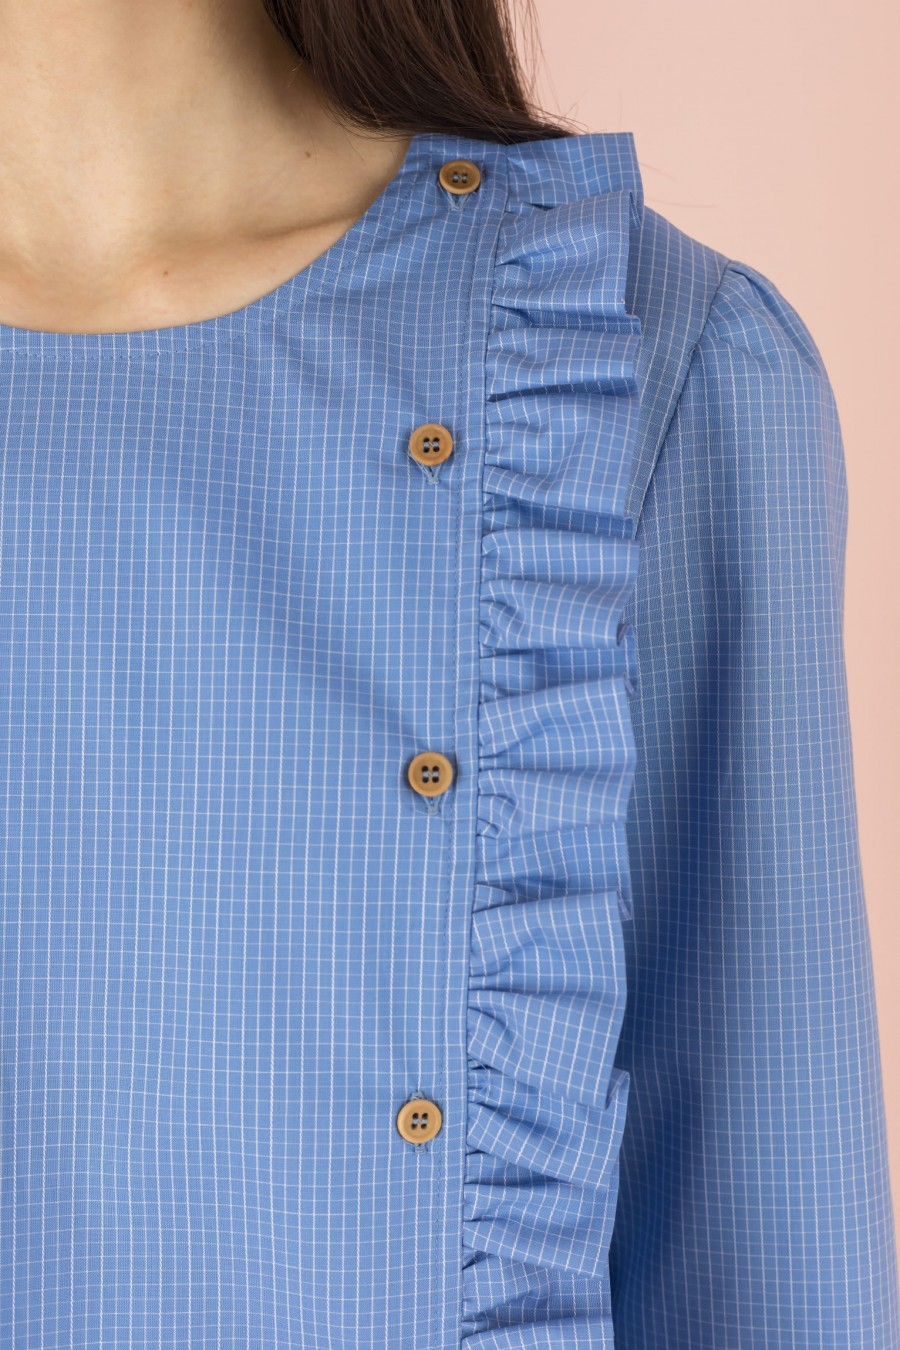 light blue checkered shirt with ruffles